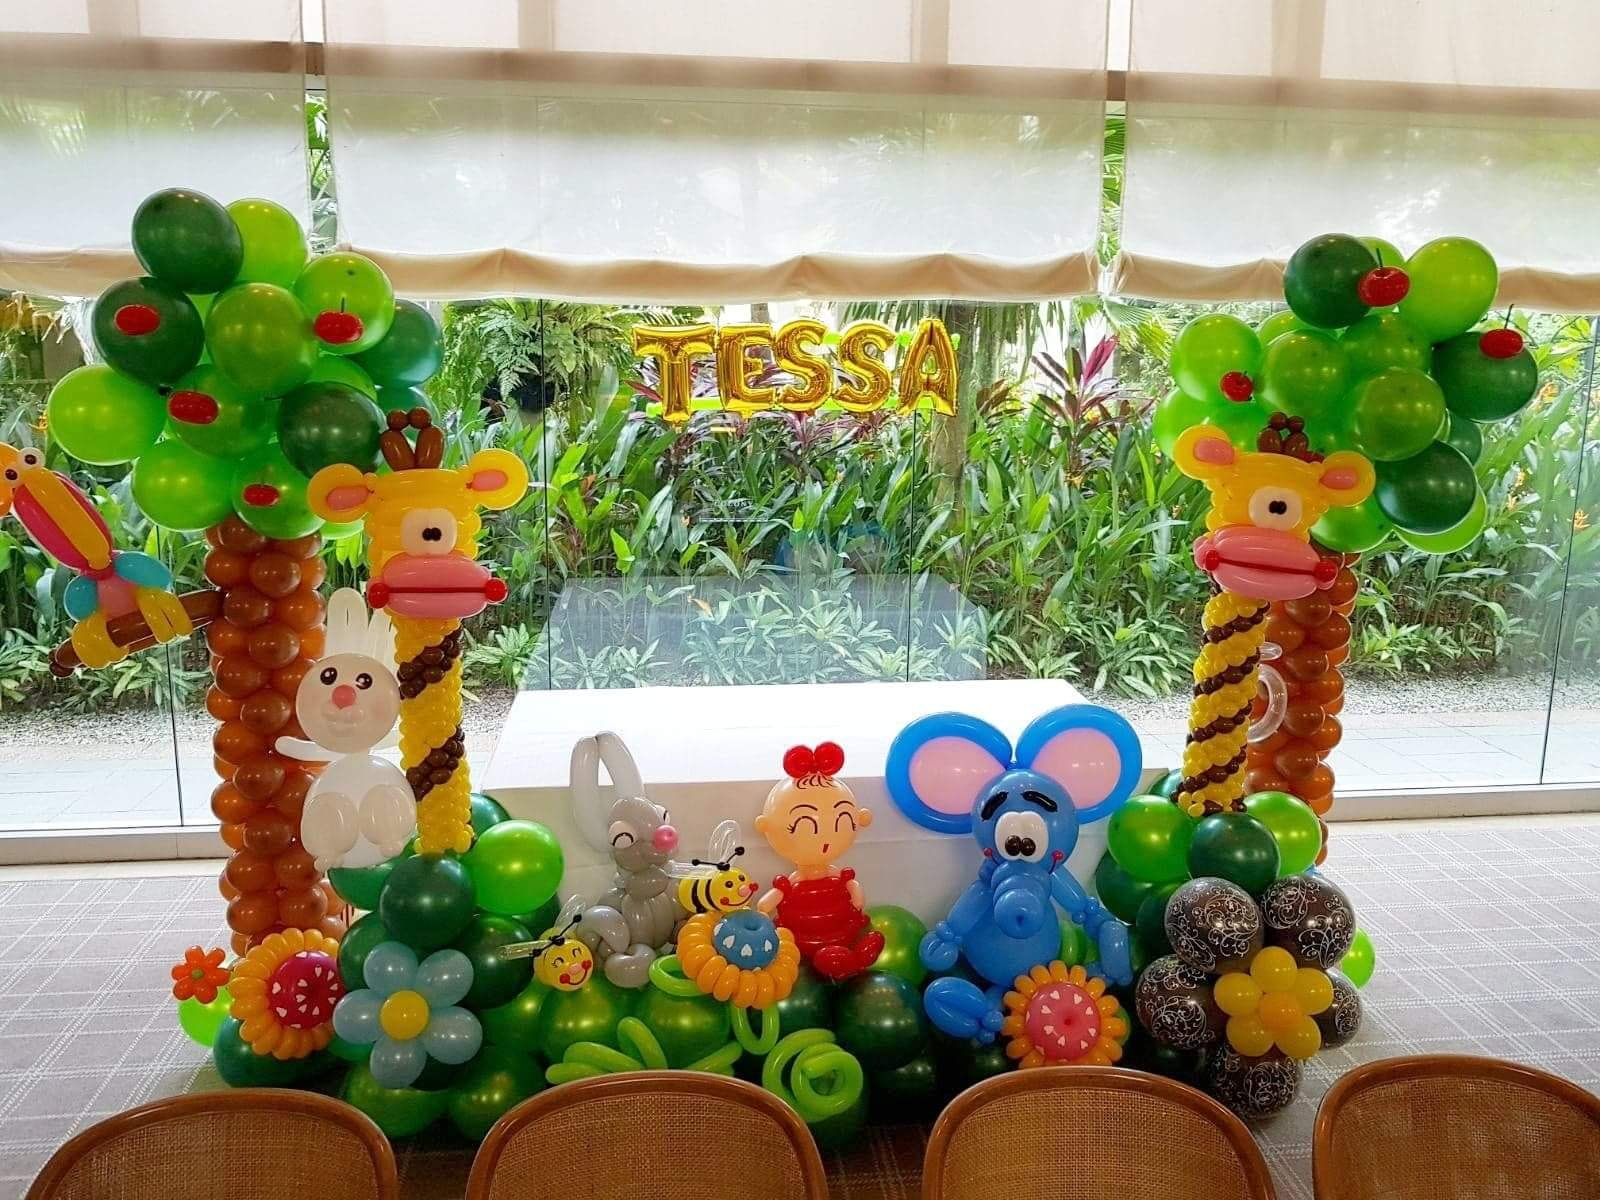 , Animal themed balloon backdrop!, Singapore Balloon Decoration Services - Balloon Workshop and Balloon Sculpting